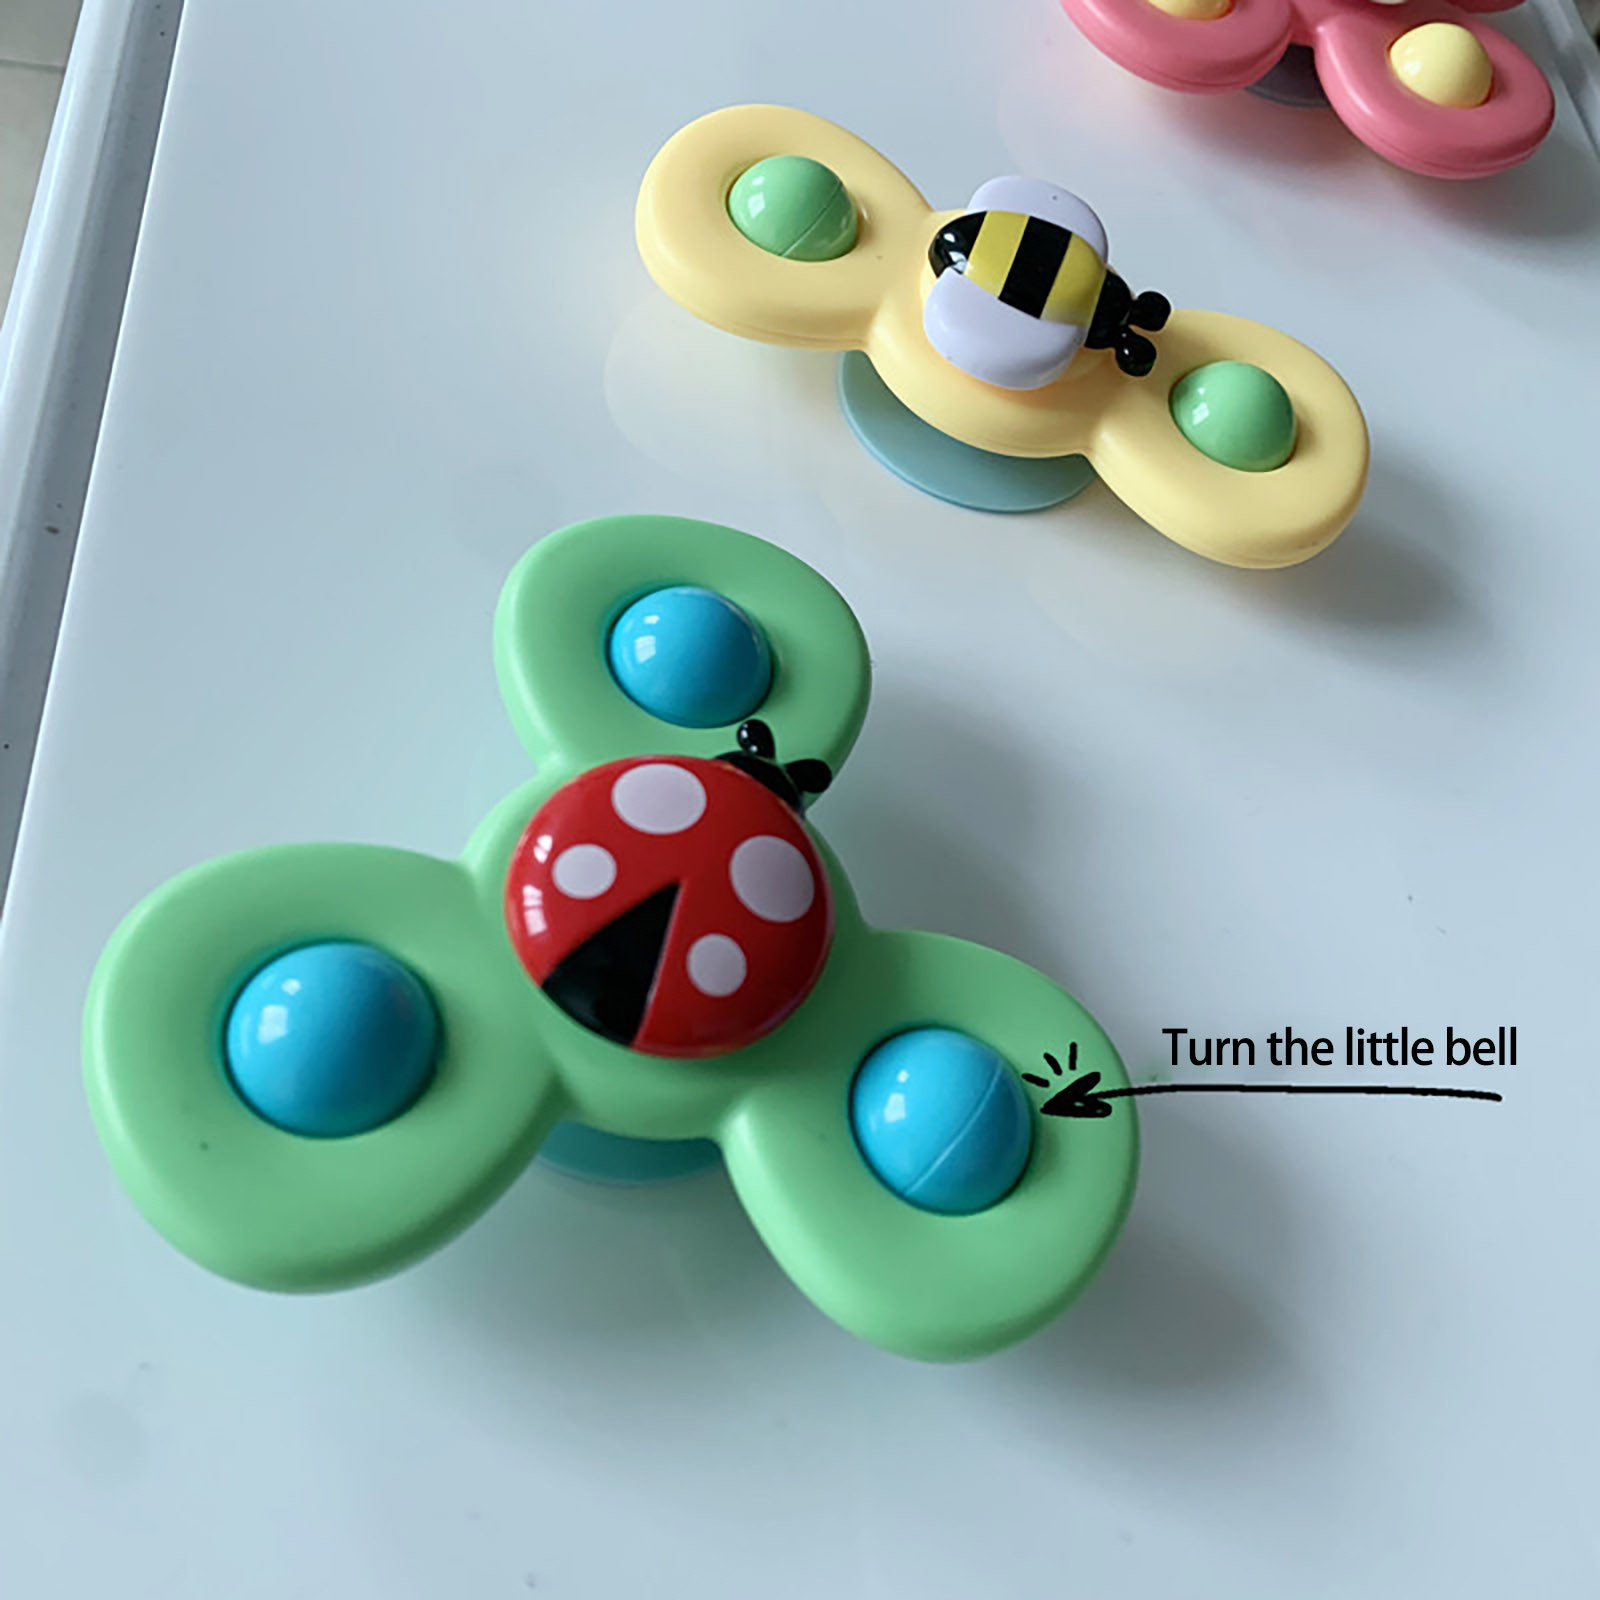 Fidget-Spinner-Toys Spinning-Games Cartoon Insect-Gyro-Toy Relief-Stress Fingertip Educational img2